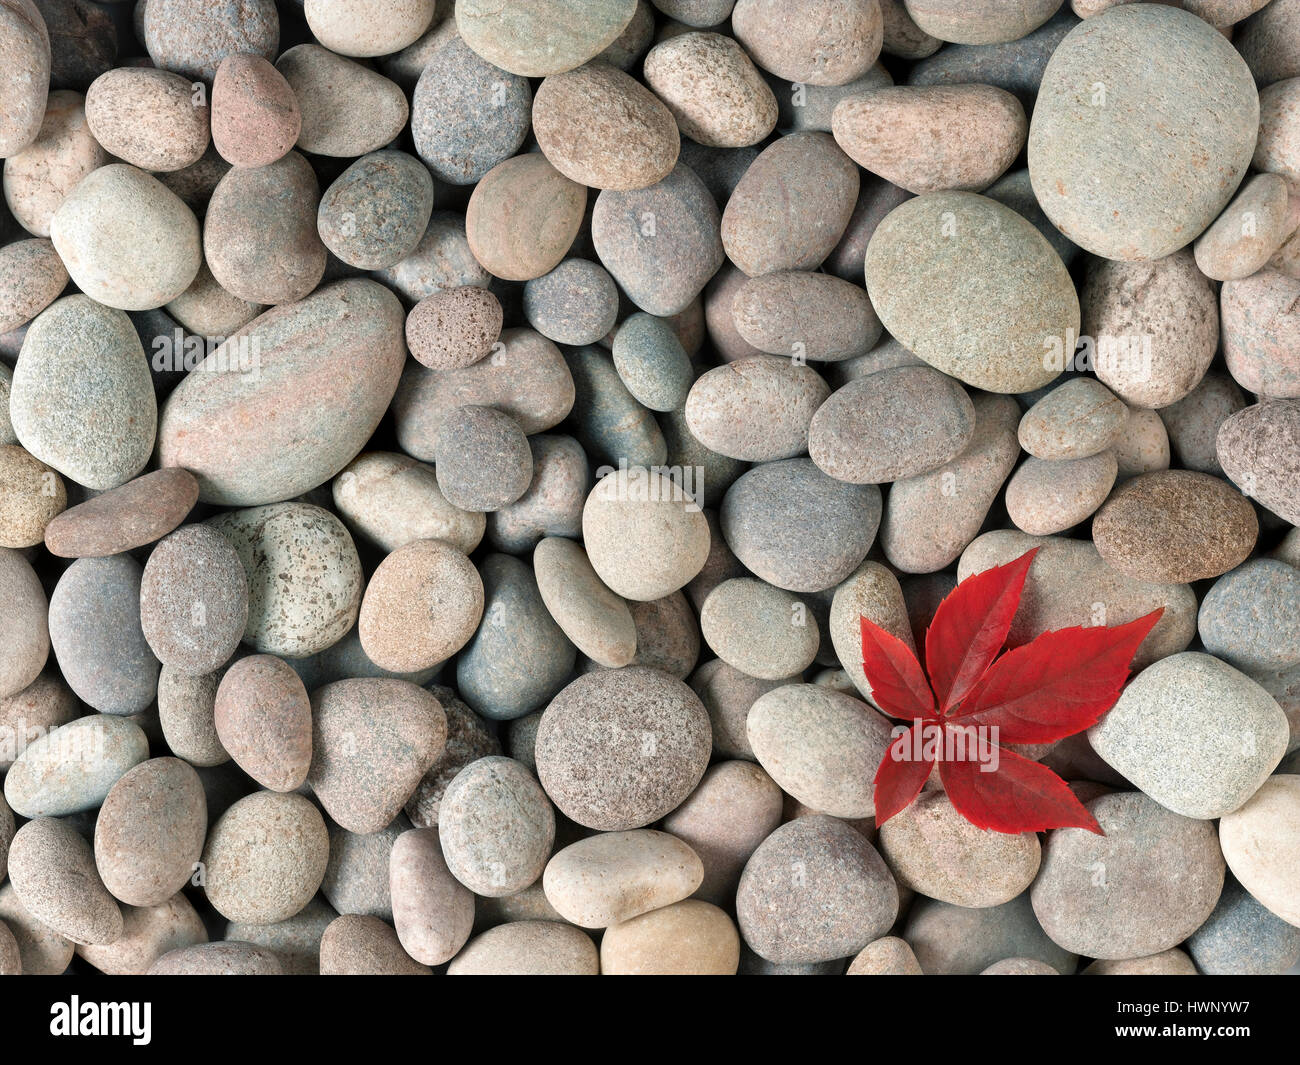 red leaf on pebbles - Stock Image